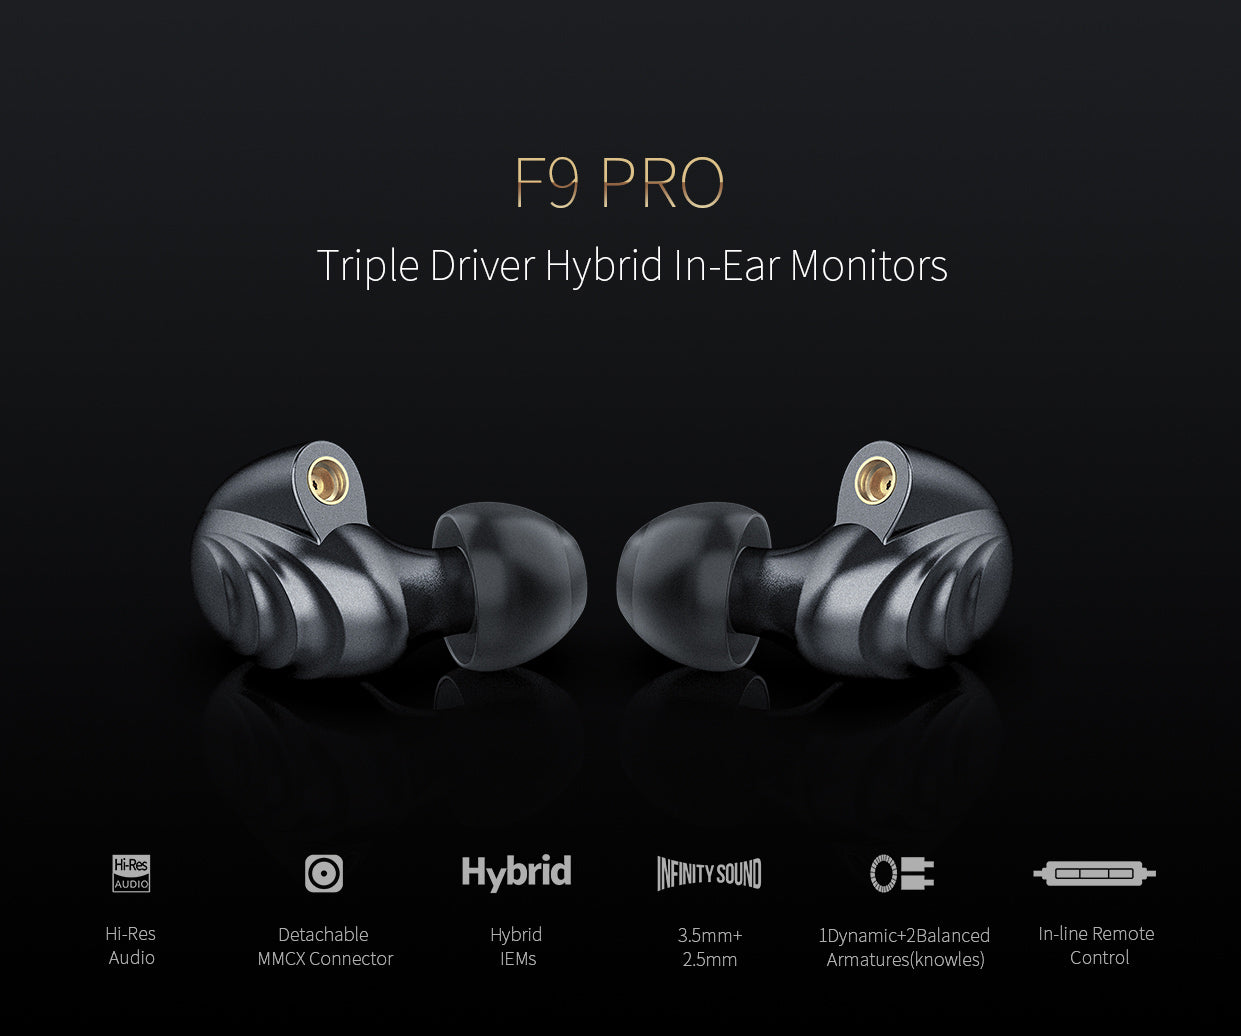 fiio-f9pro-triple-driver-in-ear-monitors